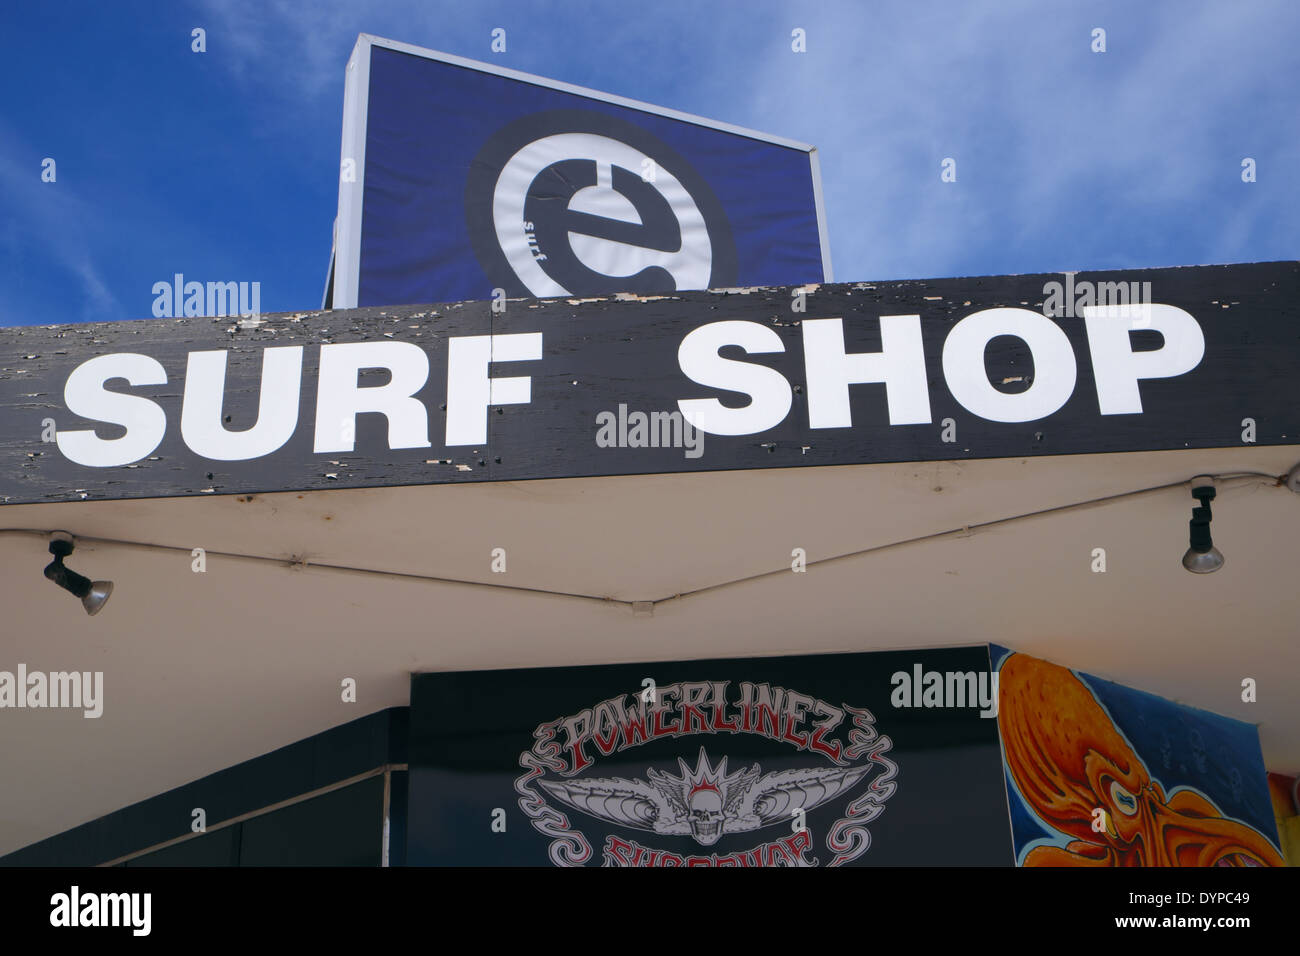 Stock Photo Surf Shop Store In Narrabeen On Sydneys Northern Beaches